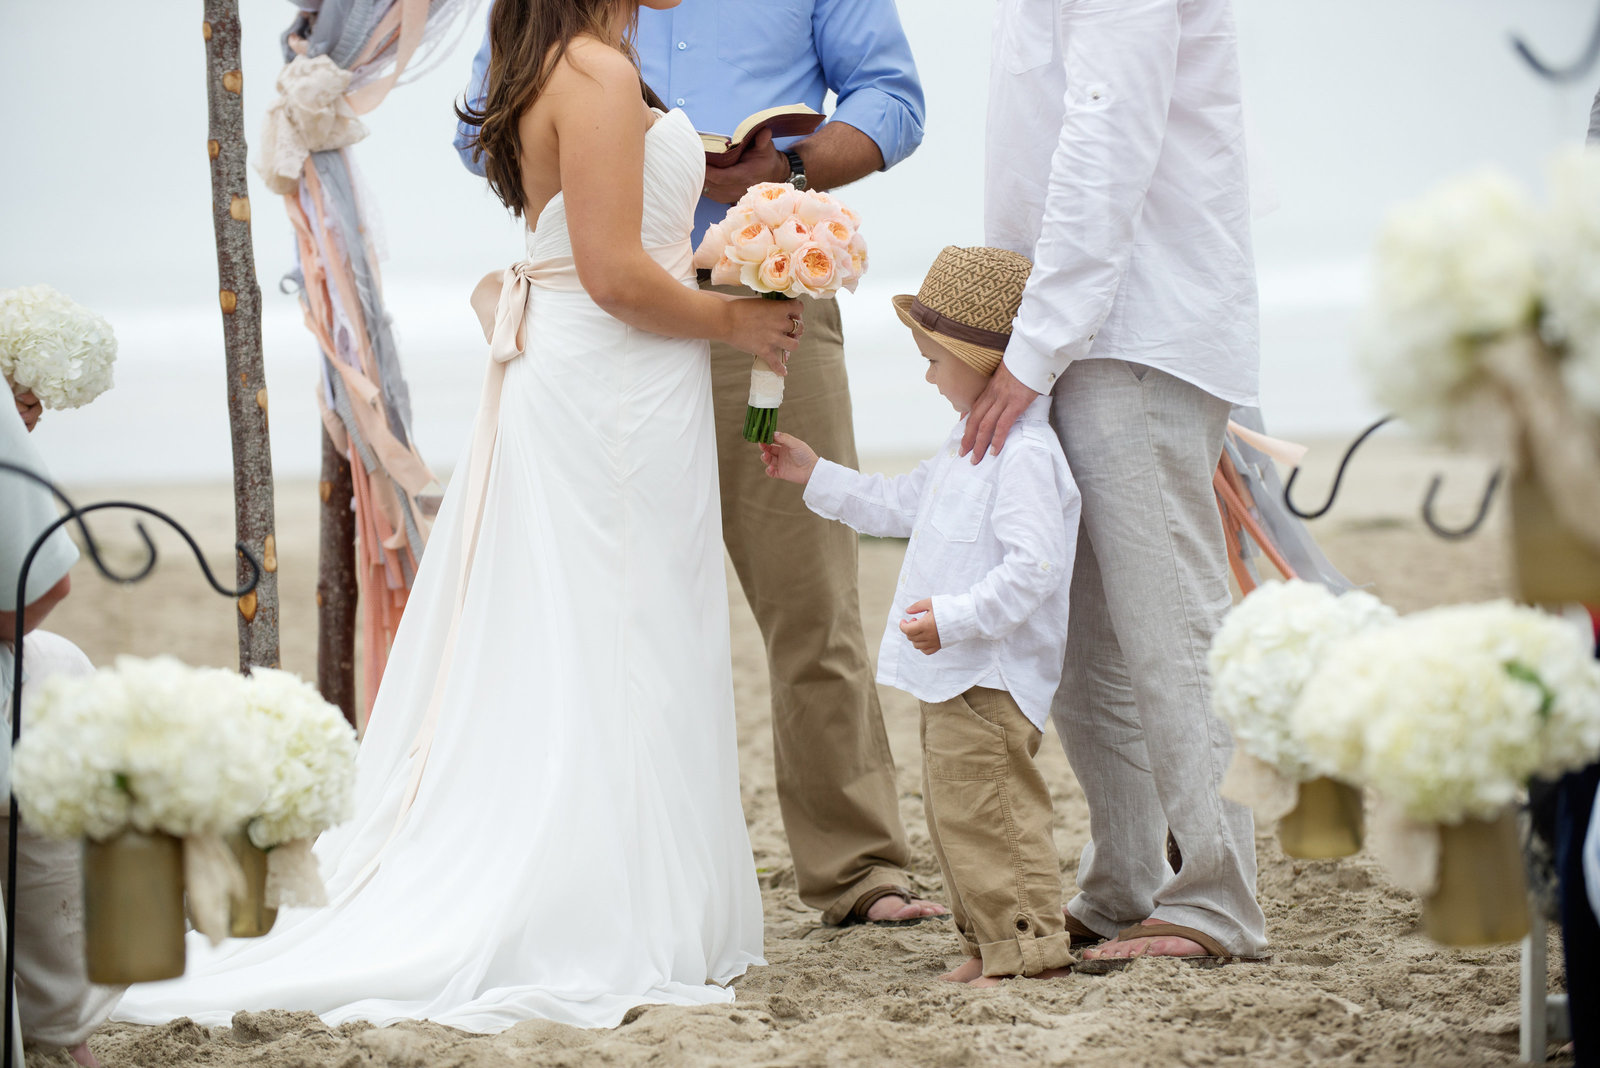 ring bearer stands at front with bride and groom during ceremony